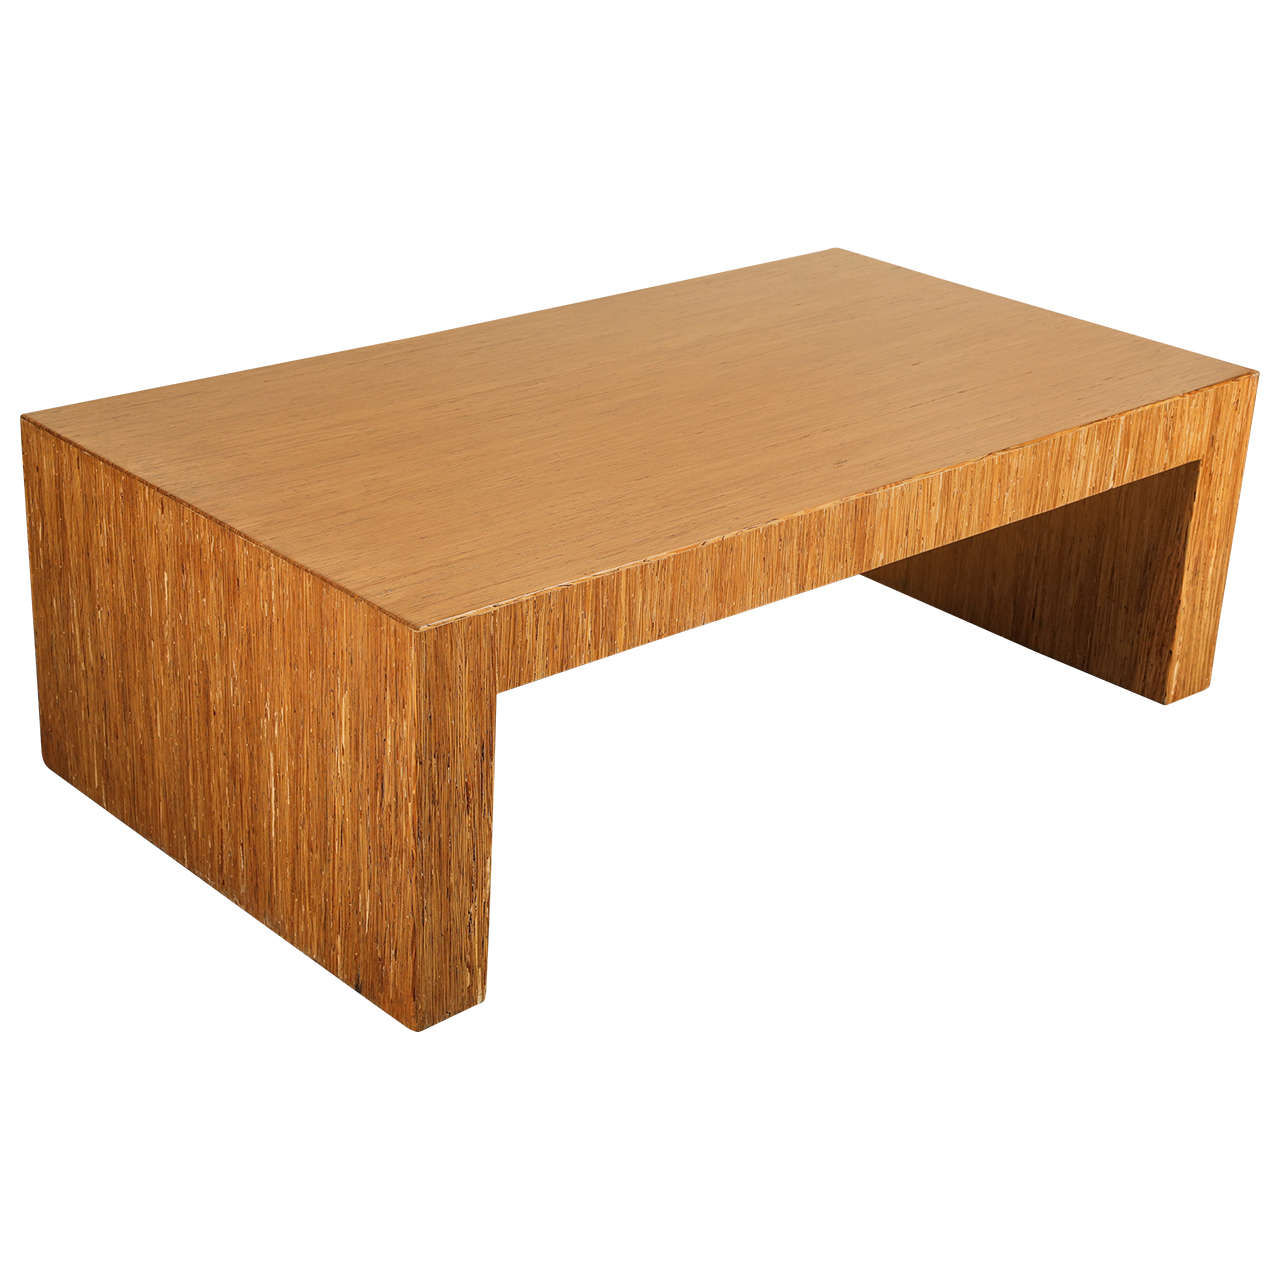 Simple Minimalist Coffee Table With Striated Wood Veneer At 1stdibs - Simple Wood Coffee Table CoffeTable